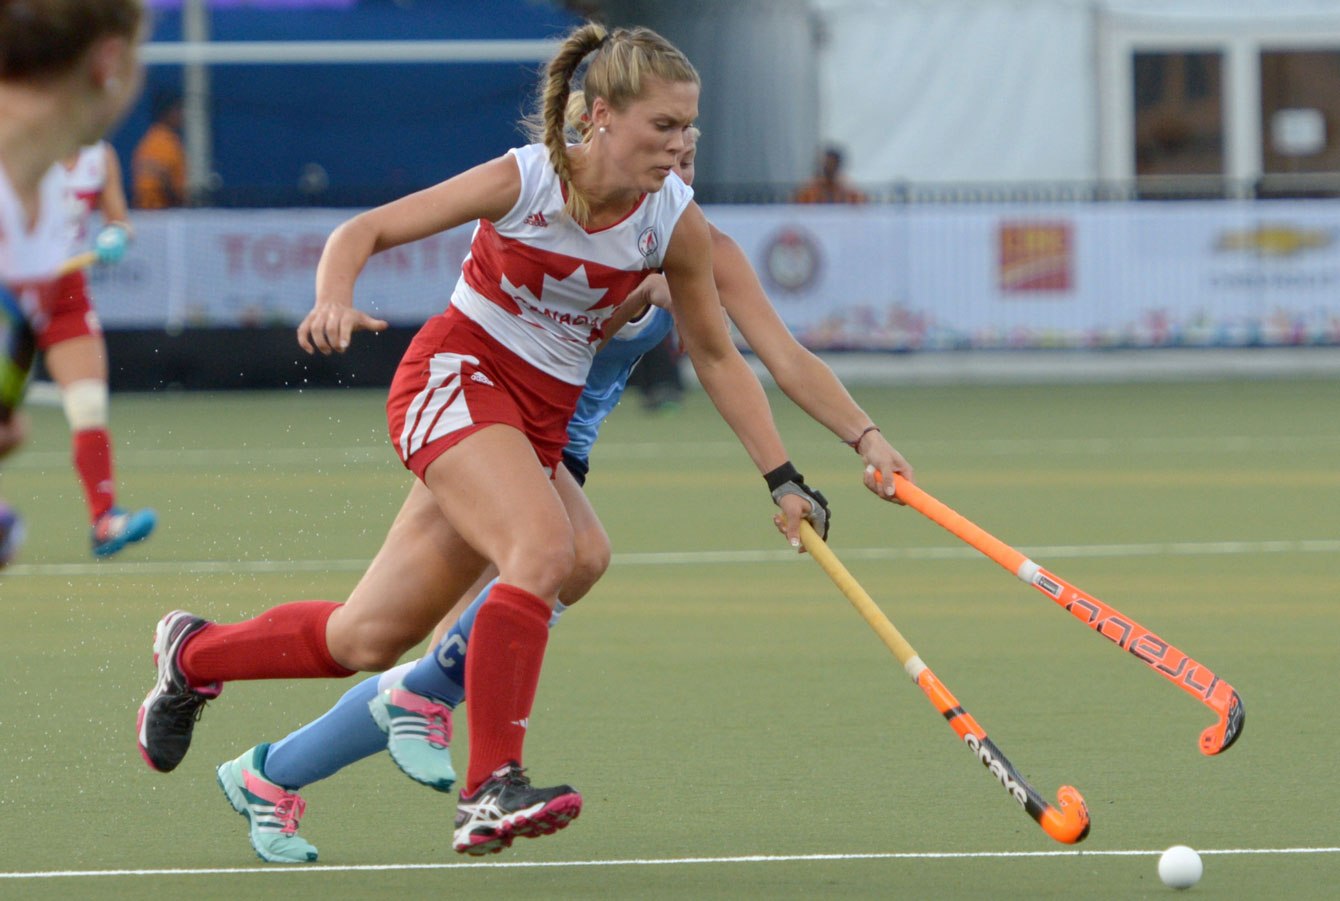 Team Canada women's field hockey team in action against Uruguay